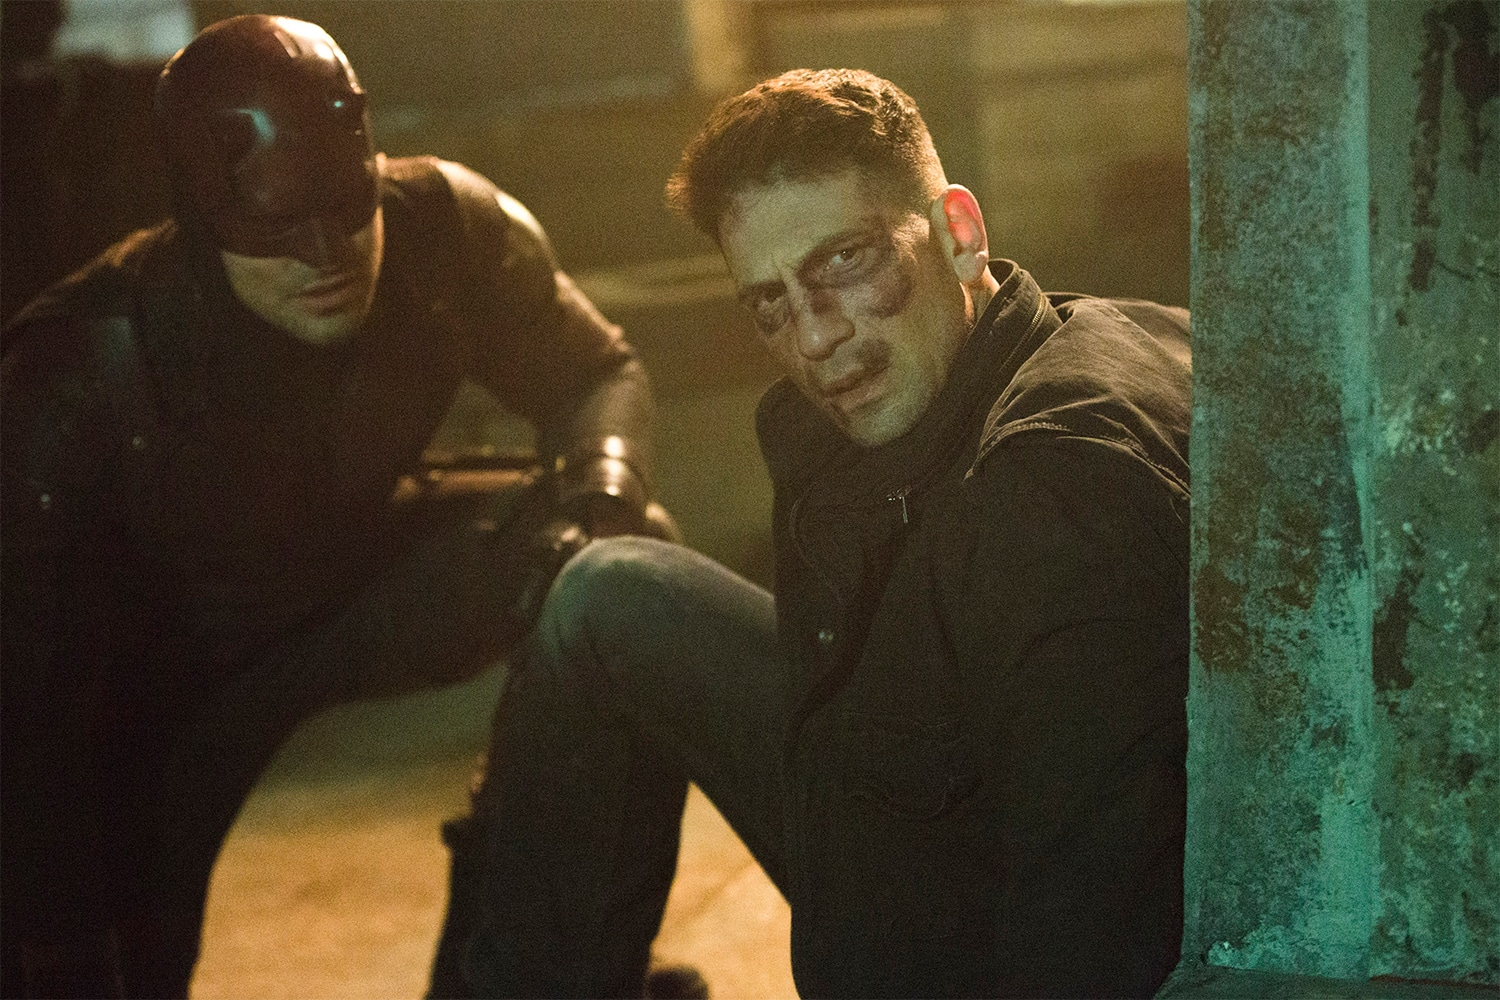 How Netflix Failed The Punisher Frank Castle and his uncomfortable violent origins in 1970s New York City Daredevil